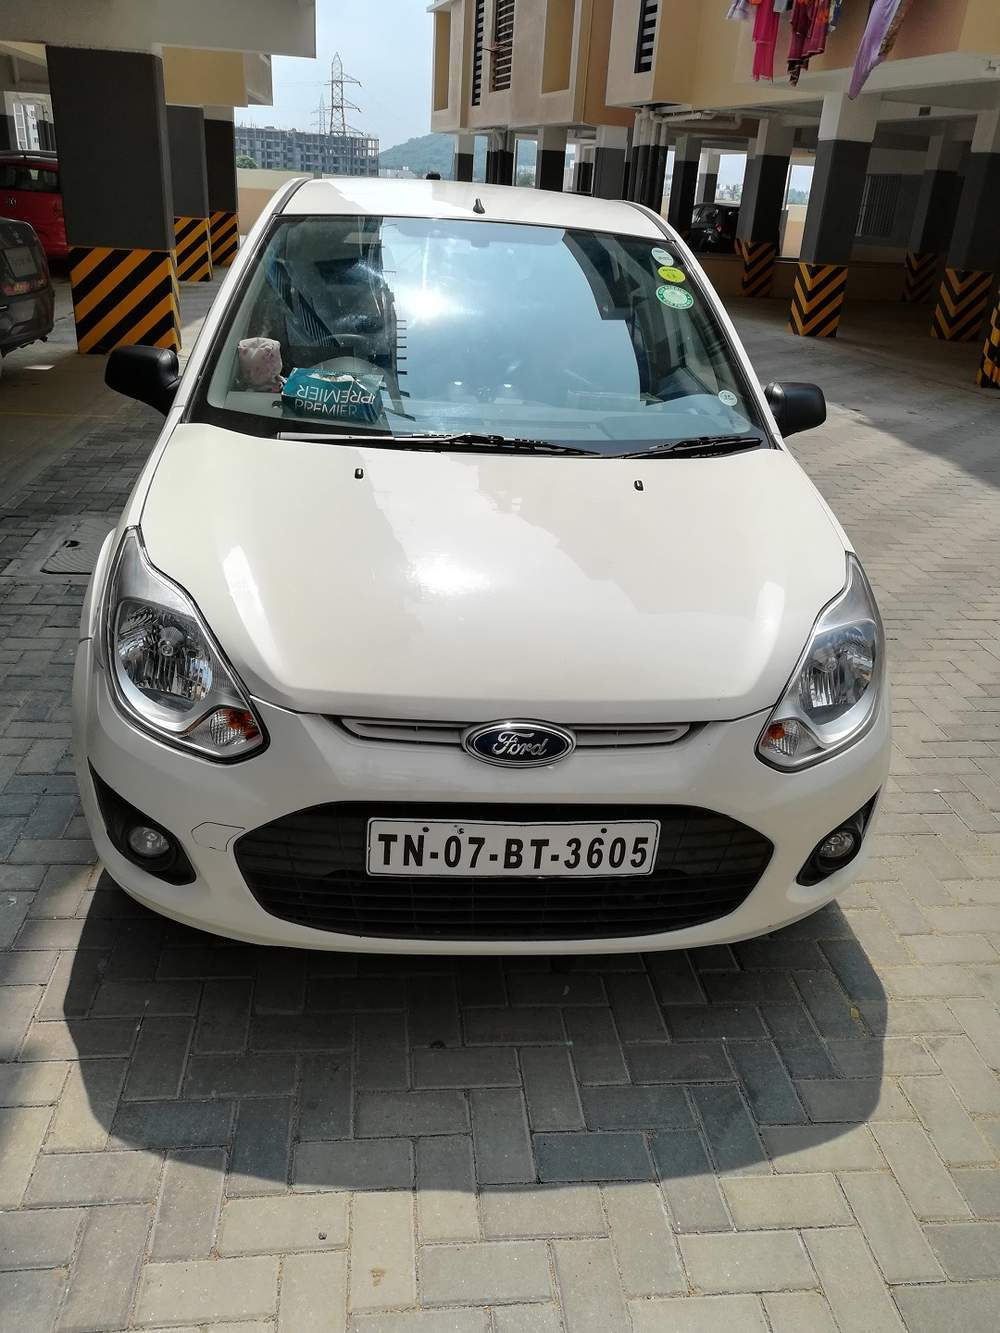 Ford Figo Diesel Car Price In Chennai